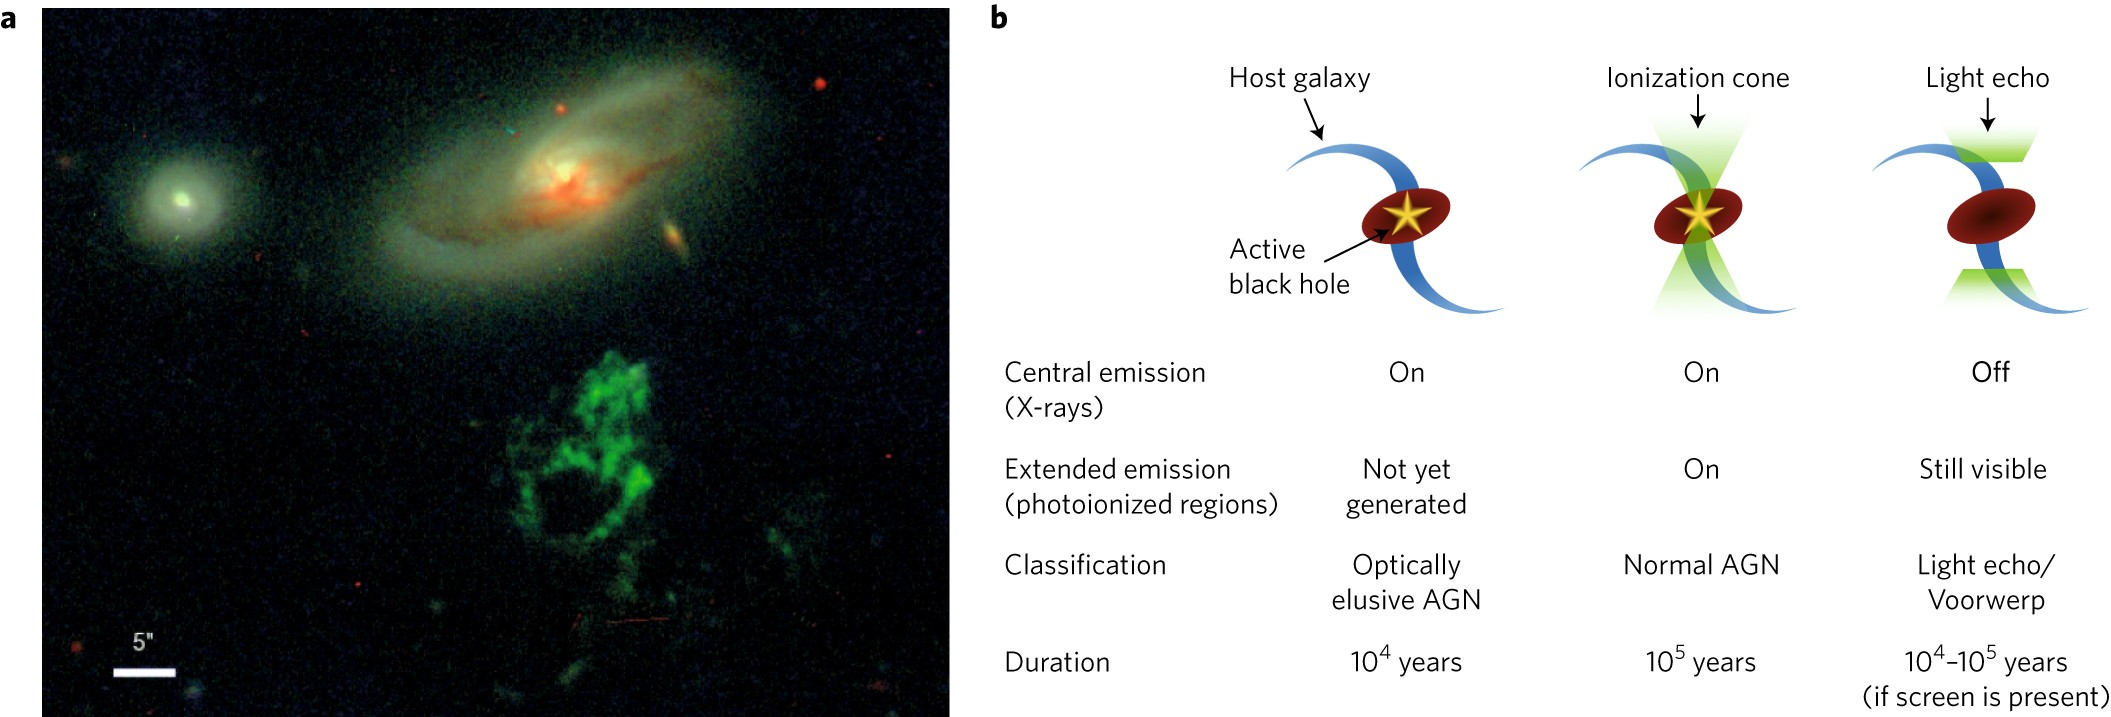 Archaeology of active galaxies across the electromagnetic